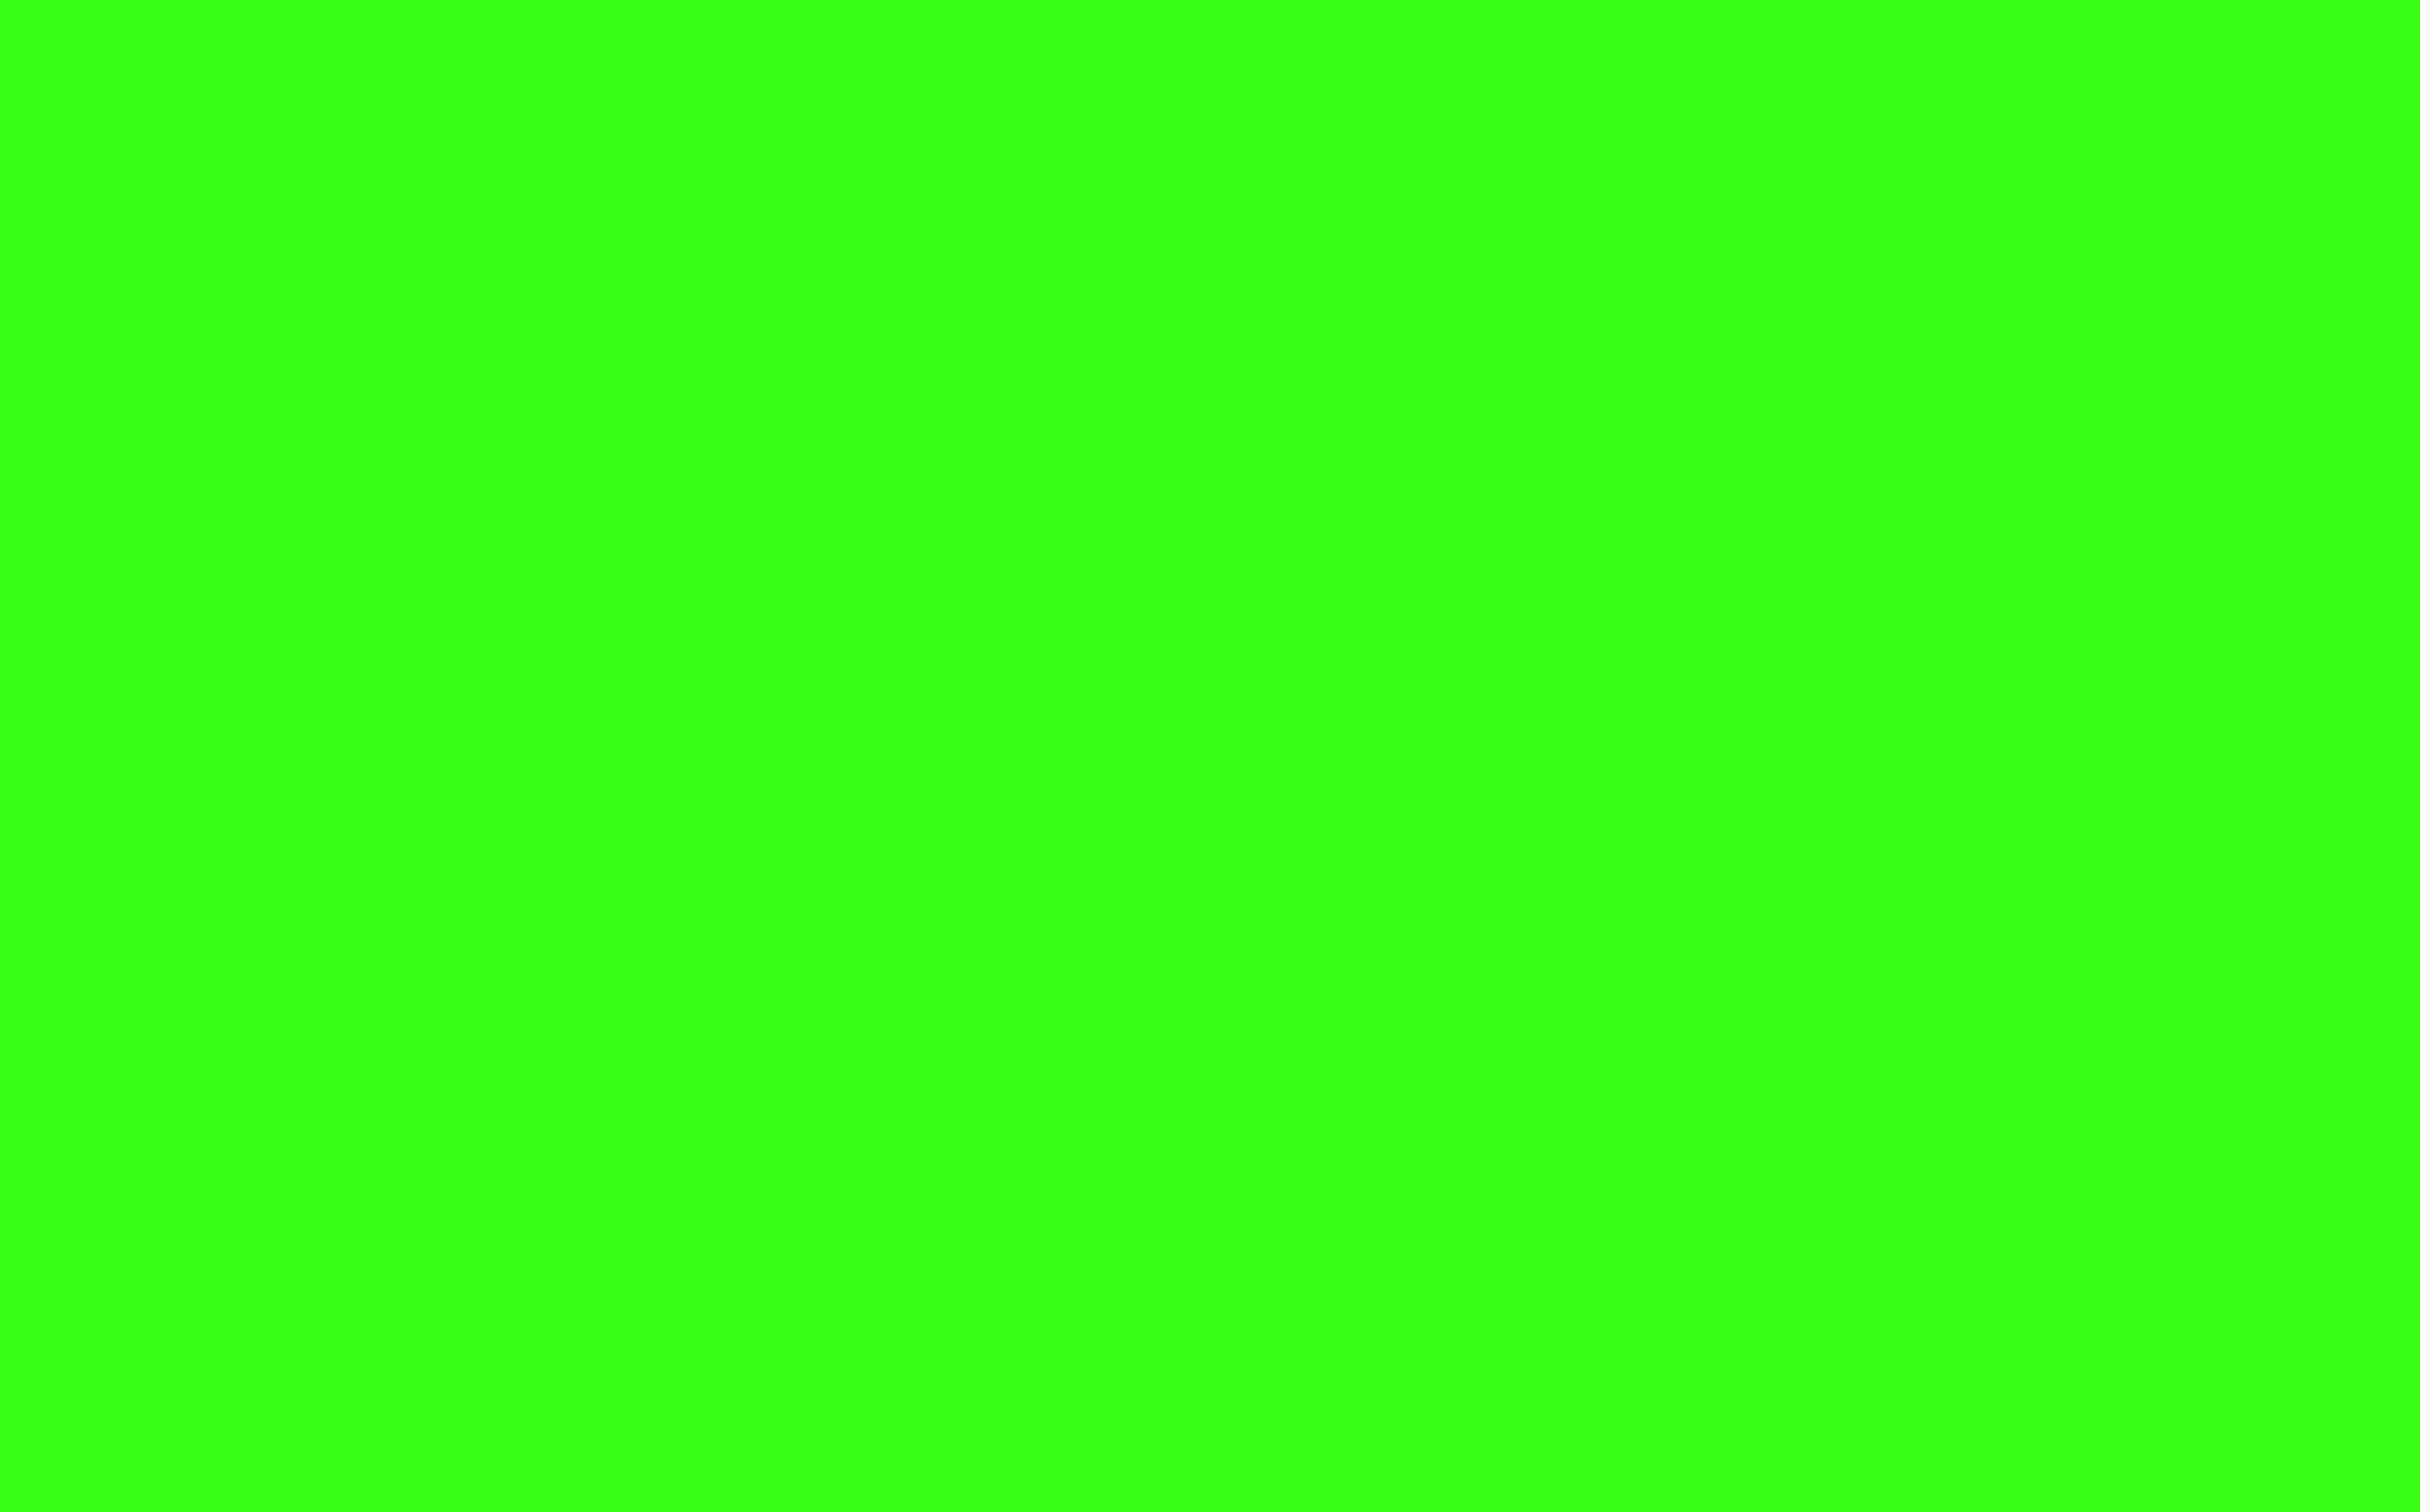 Neon Green Solid Color Background